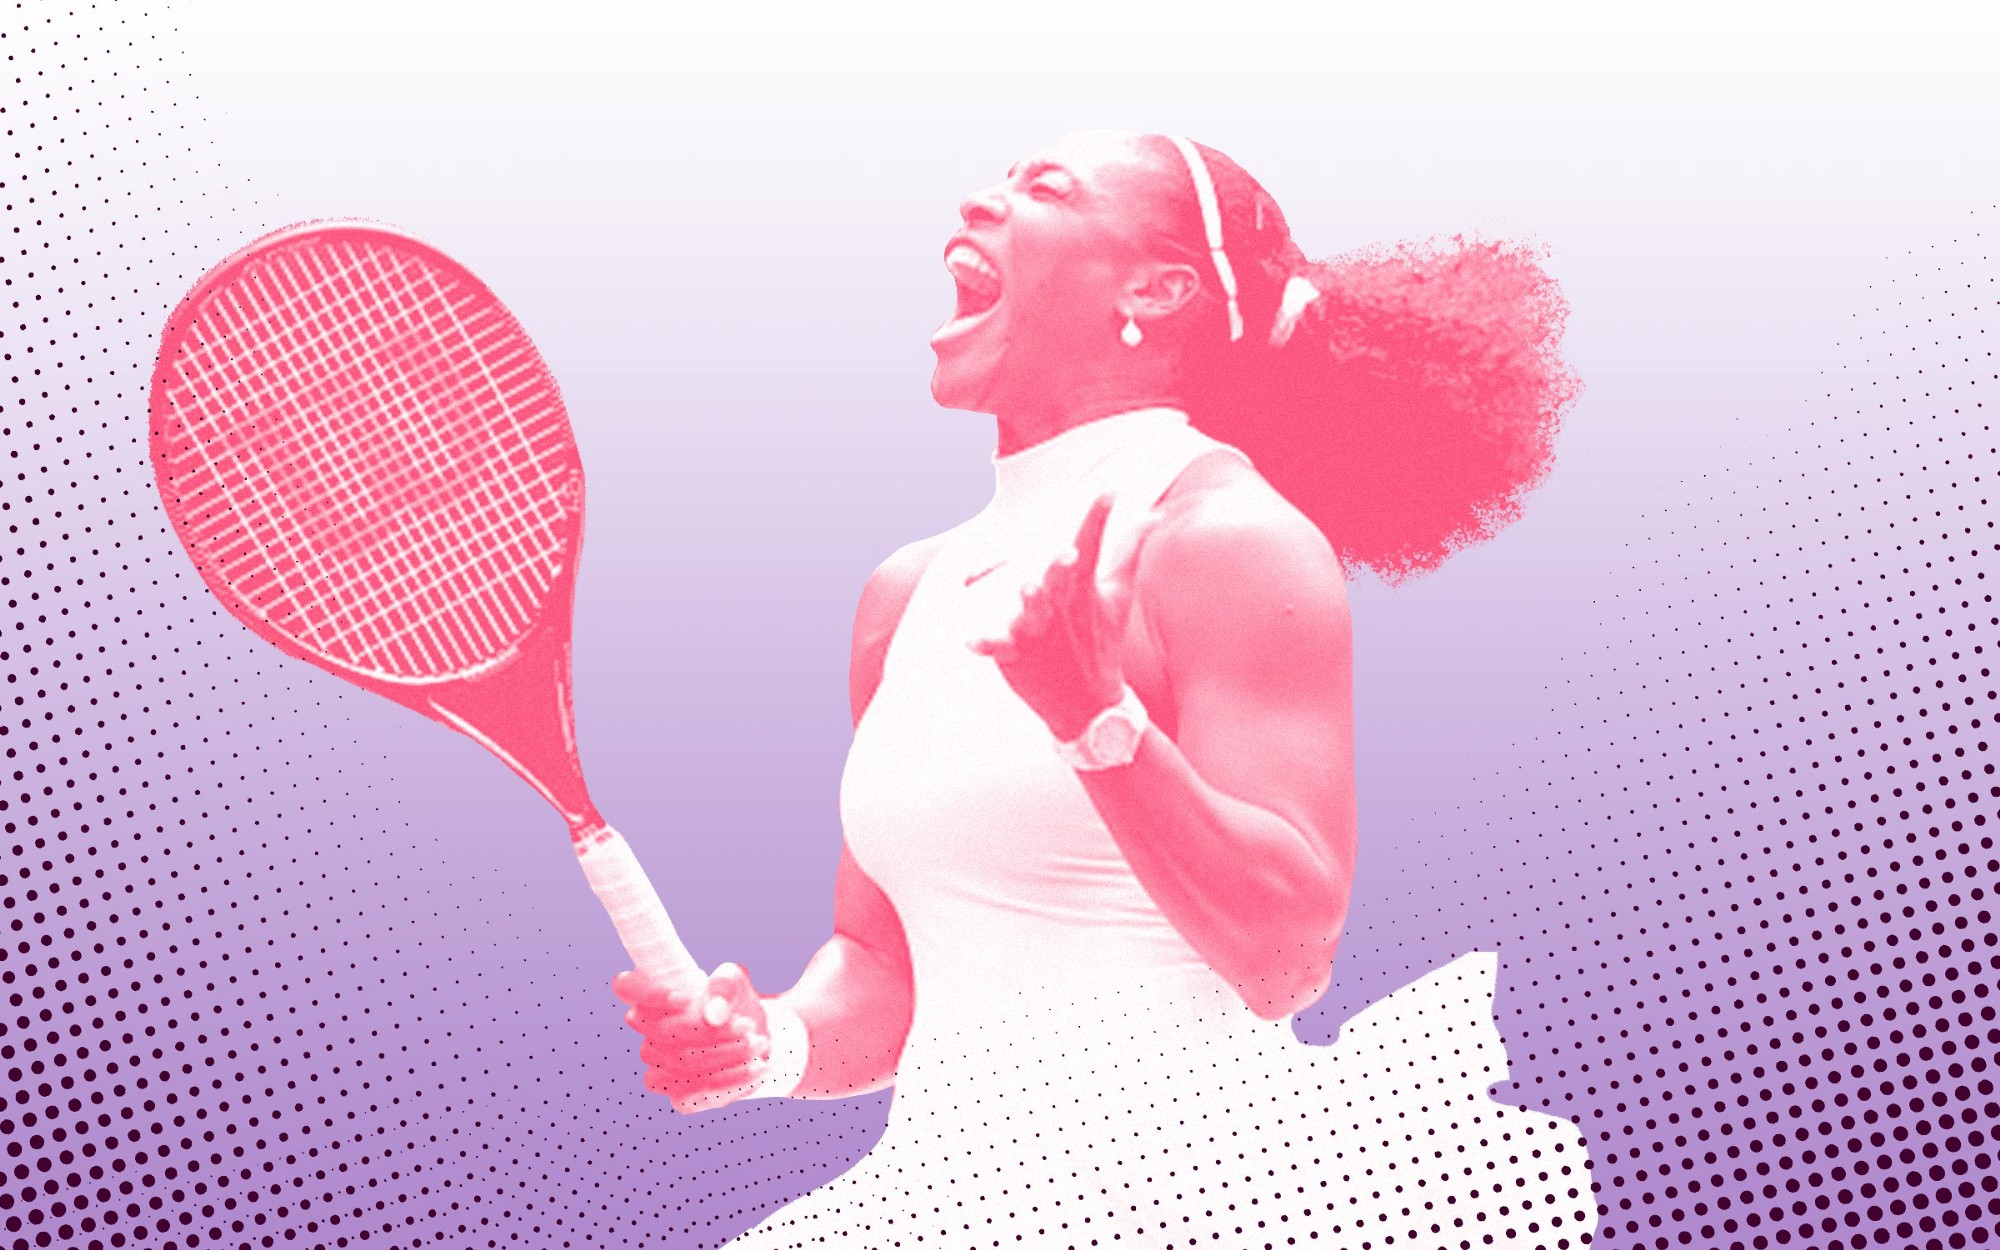 Photo illustration of Serena Williams.